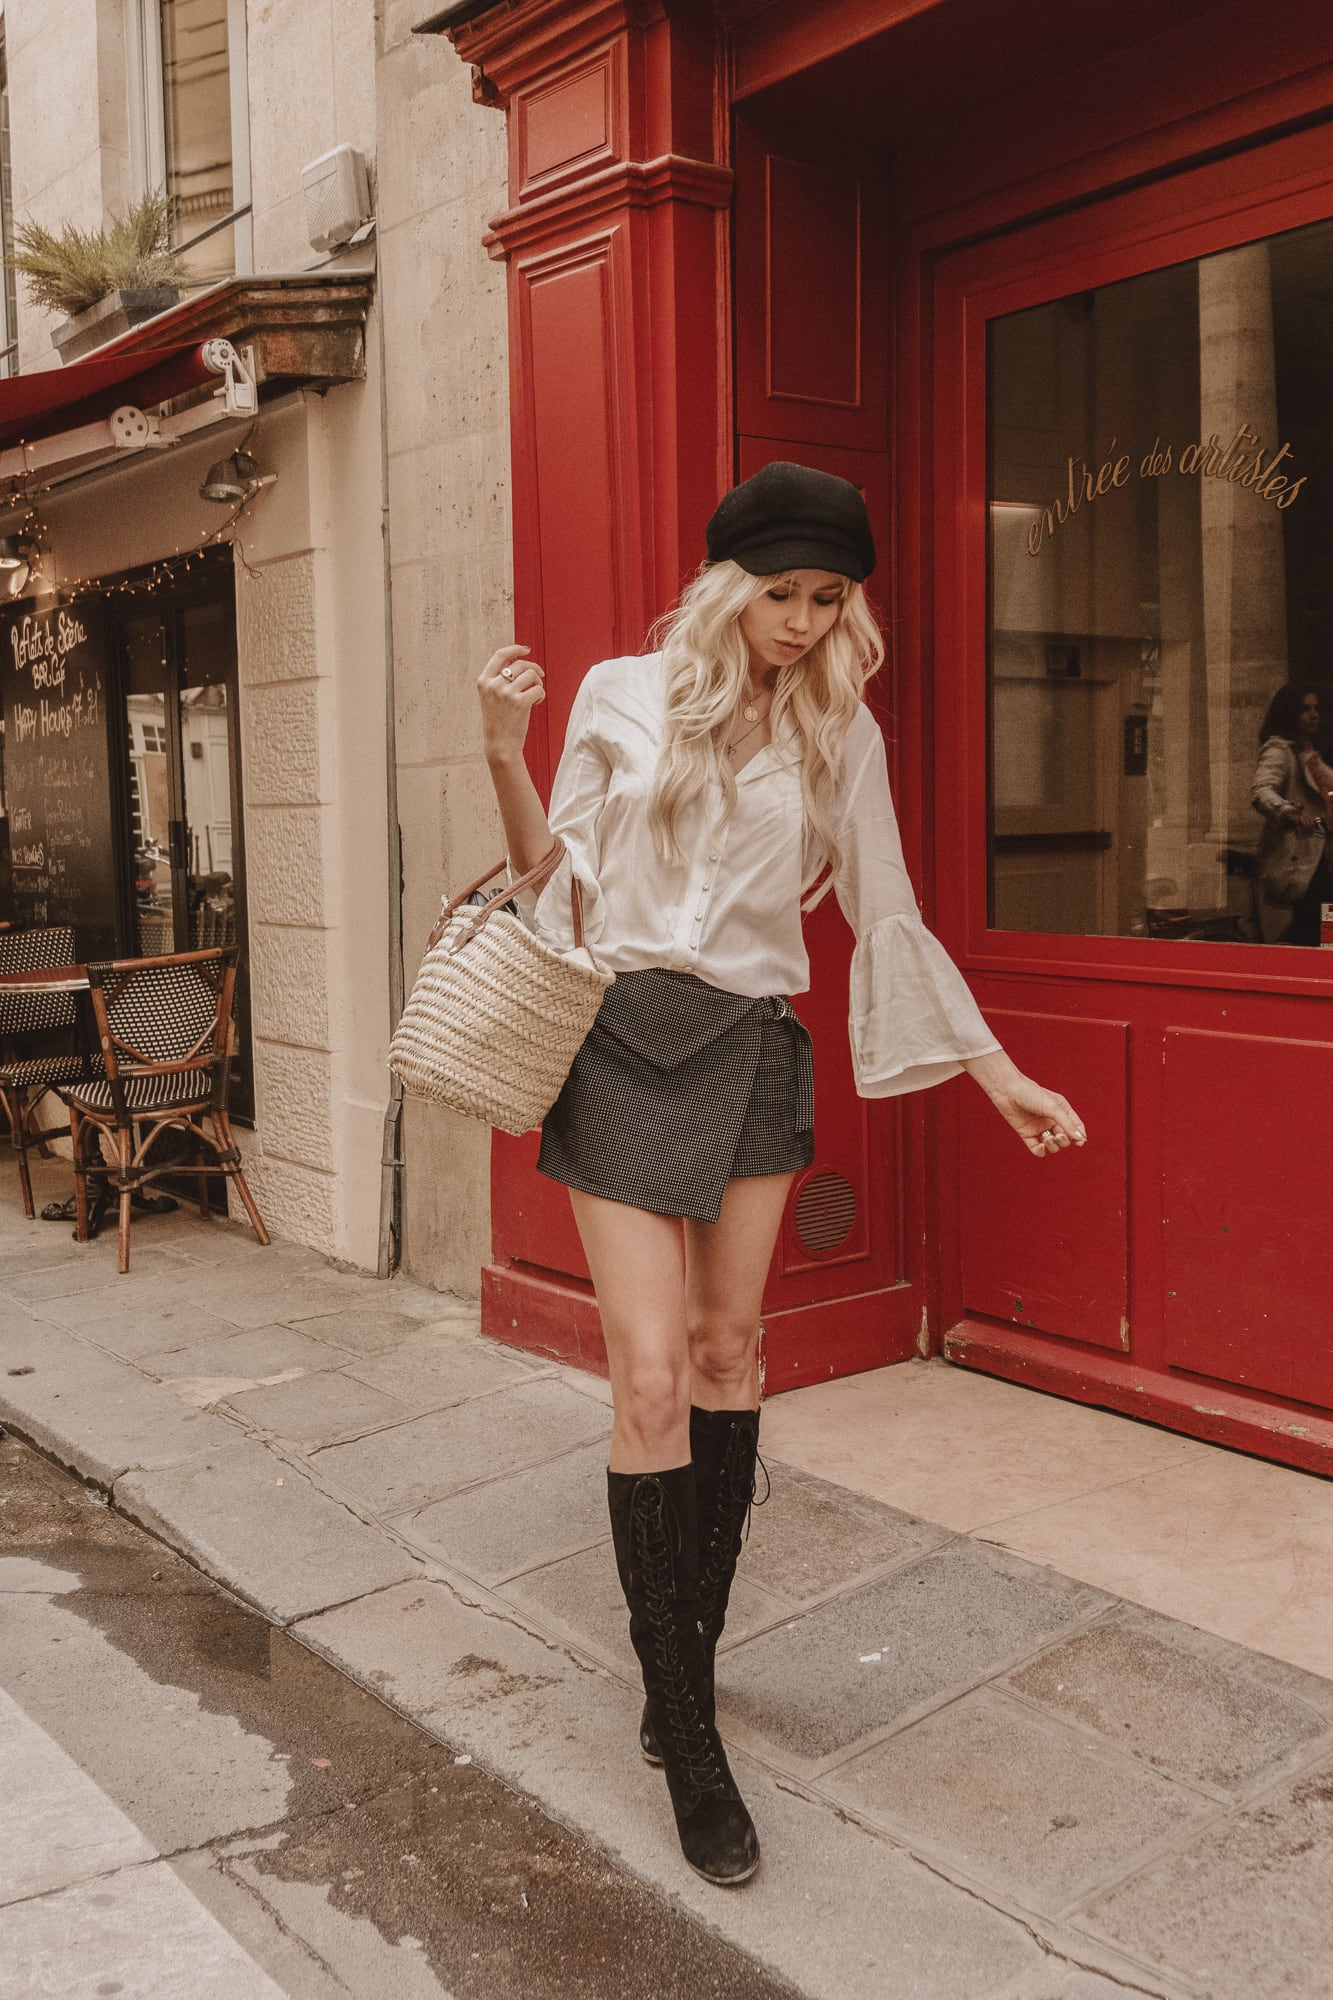 Sarah Loven, vintage style in Paris